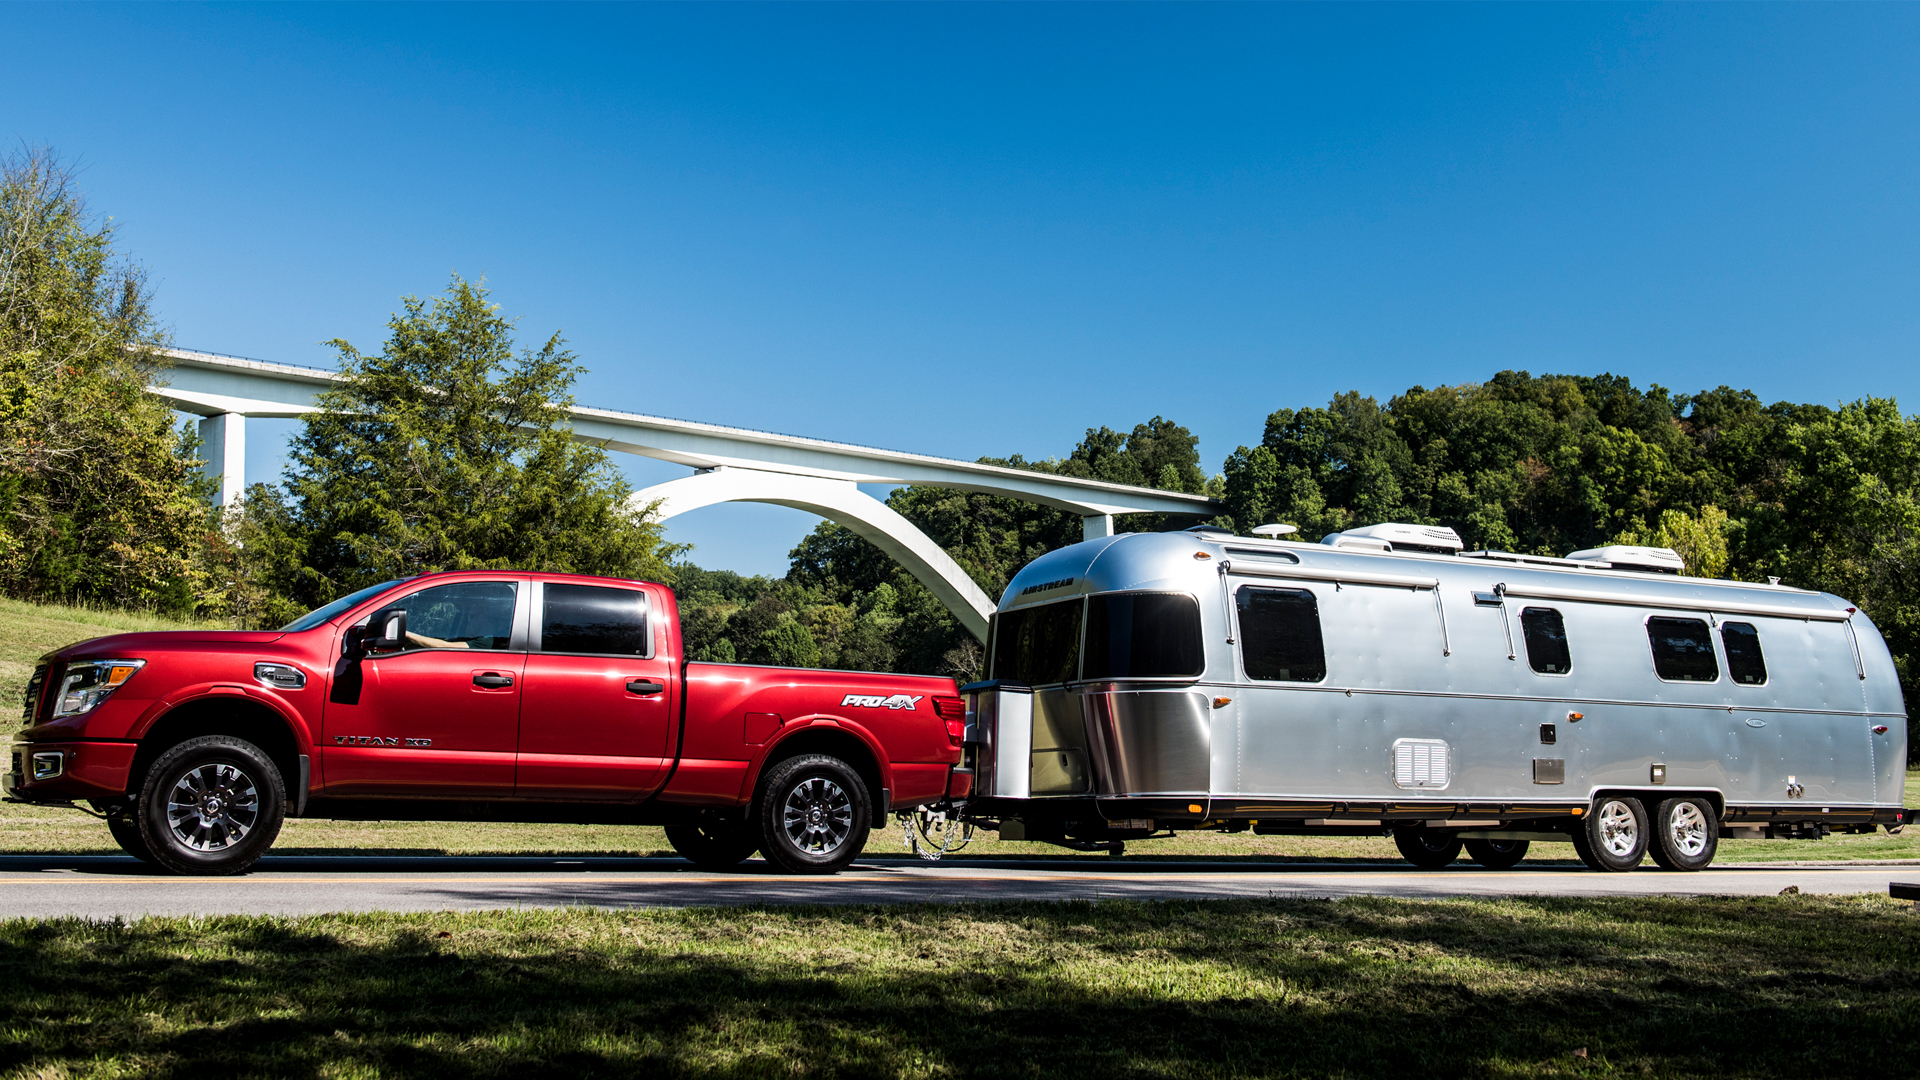 red-truck-towing-an-airstream-trailer